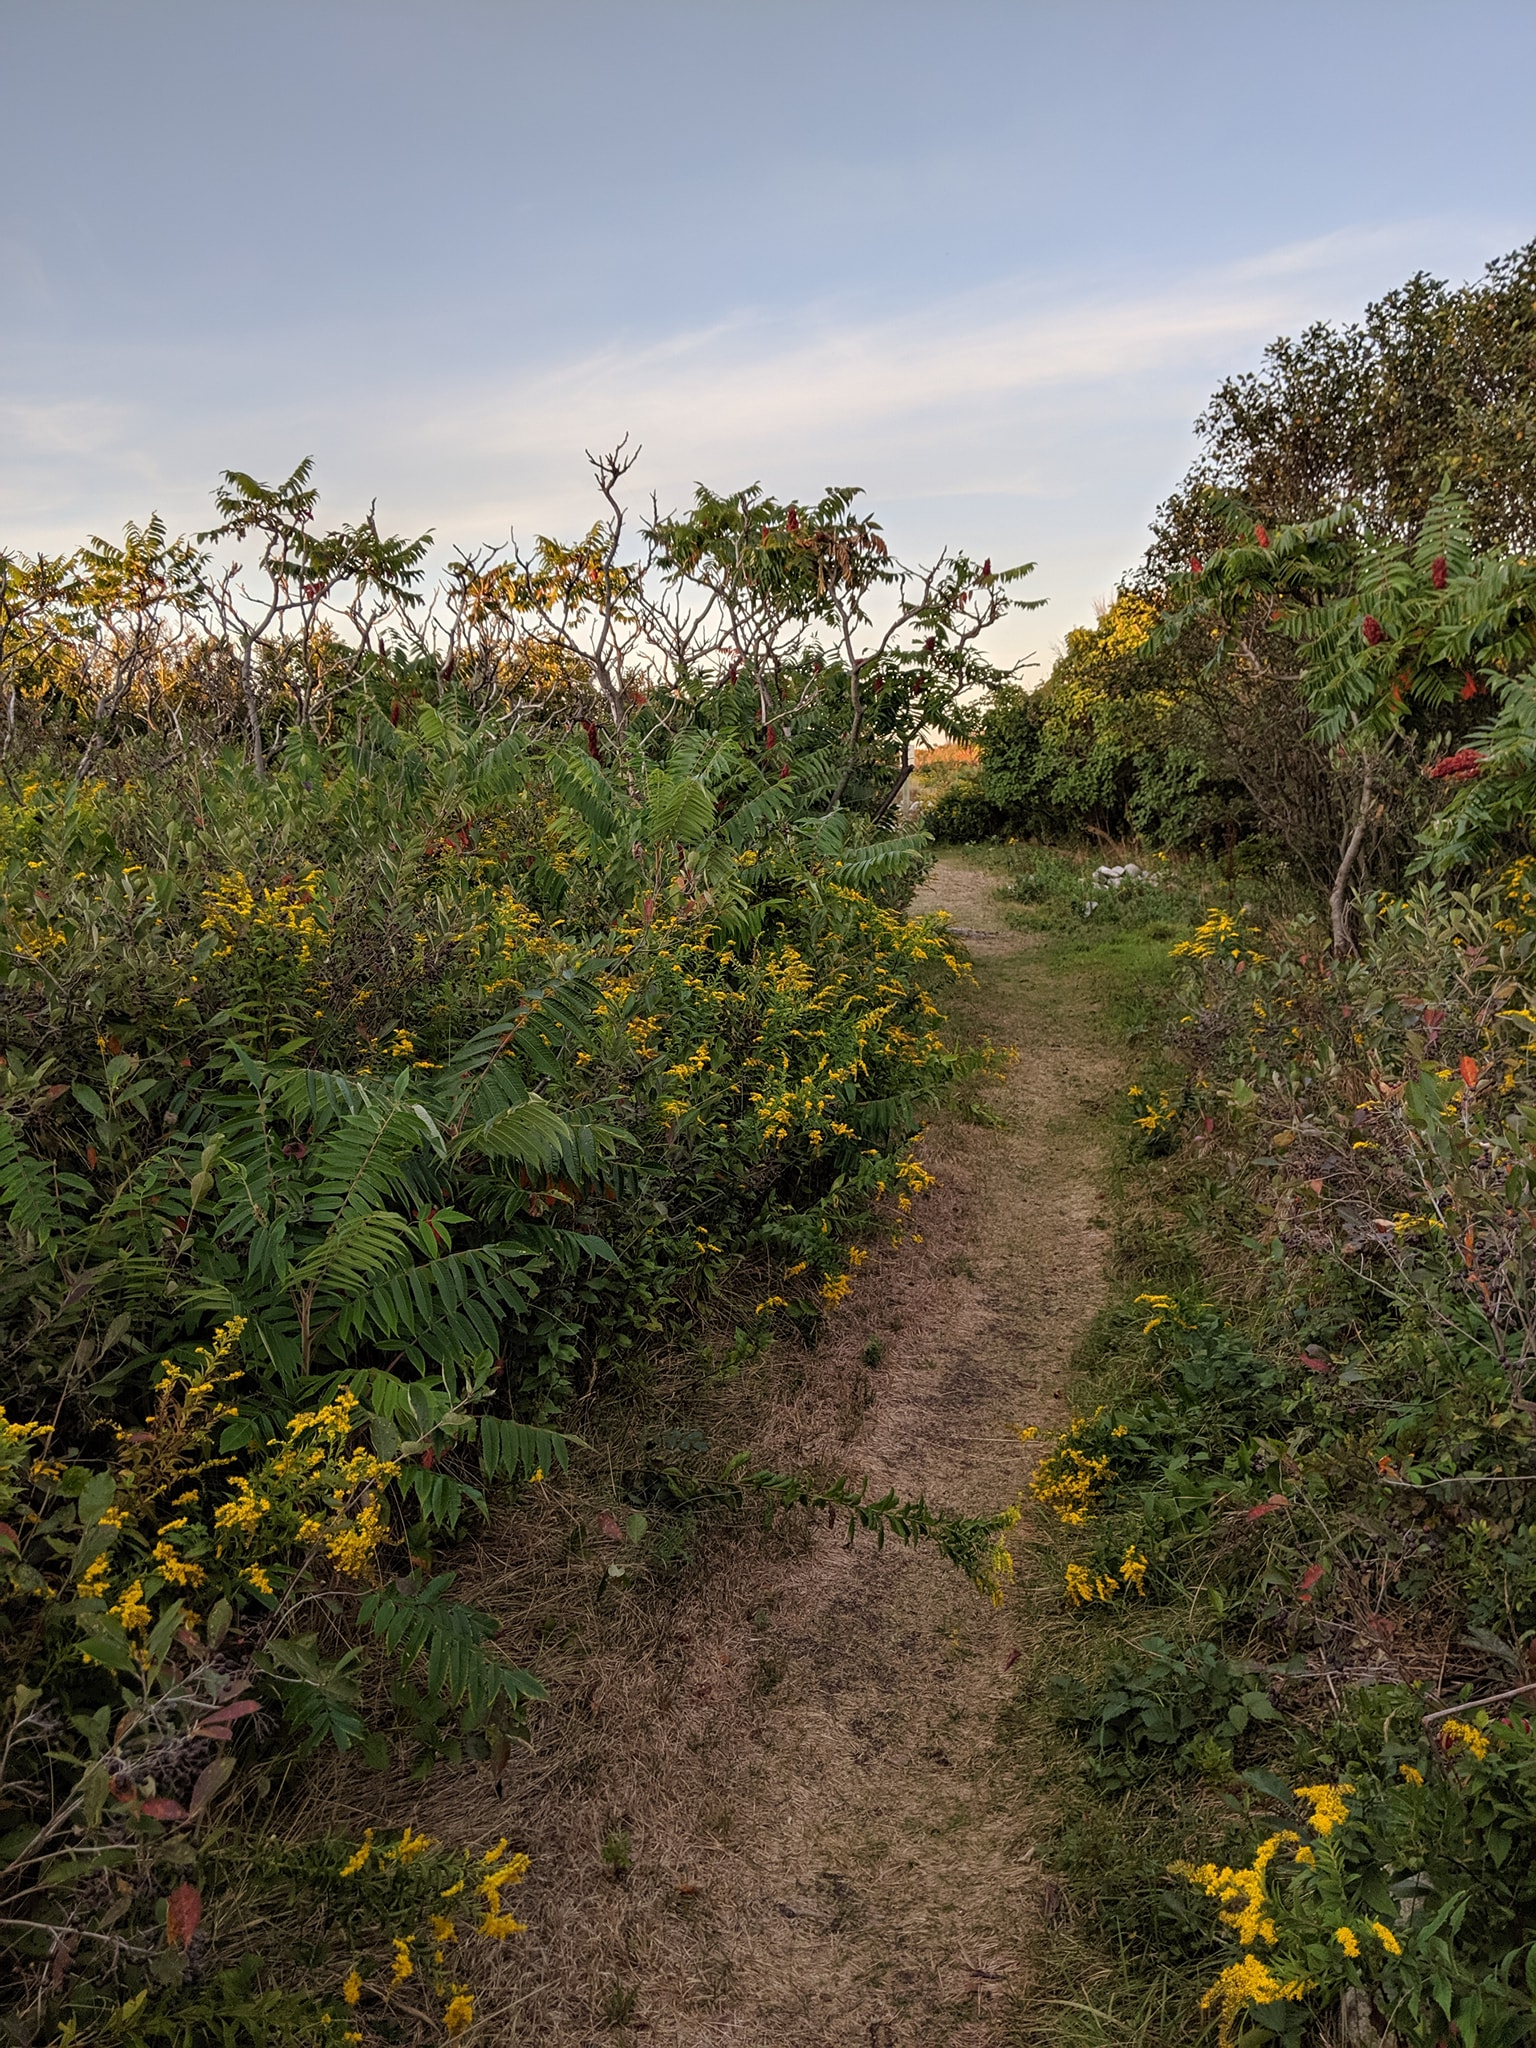 A trail through some flowers and bushes